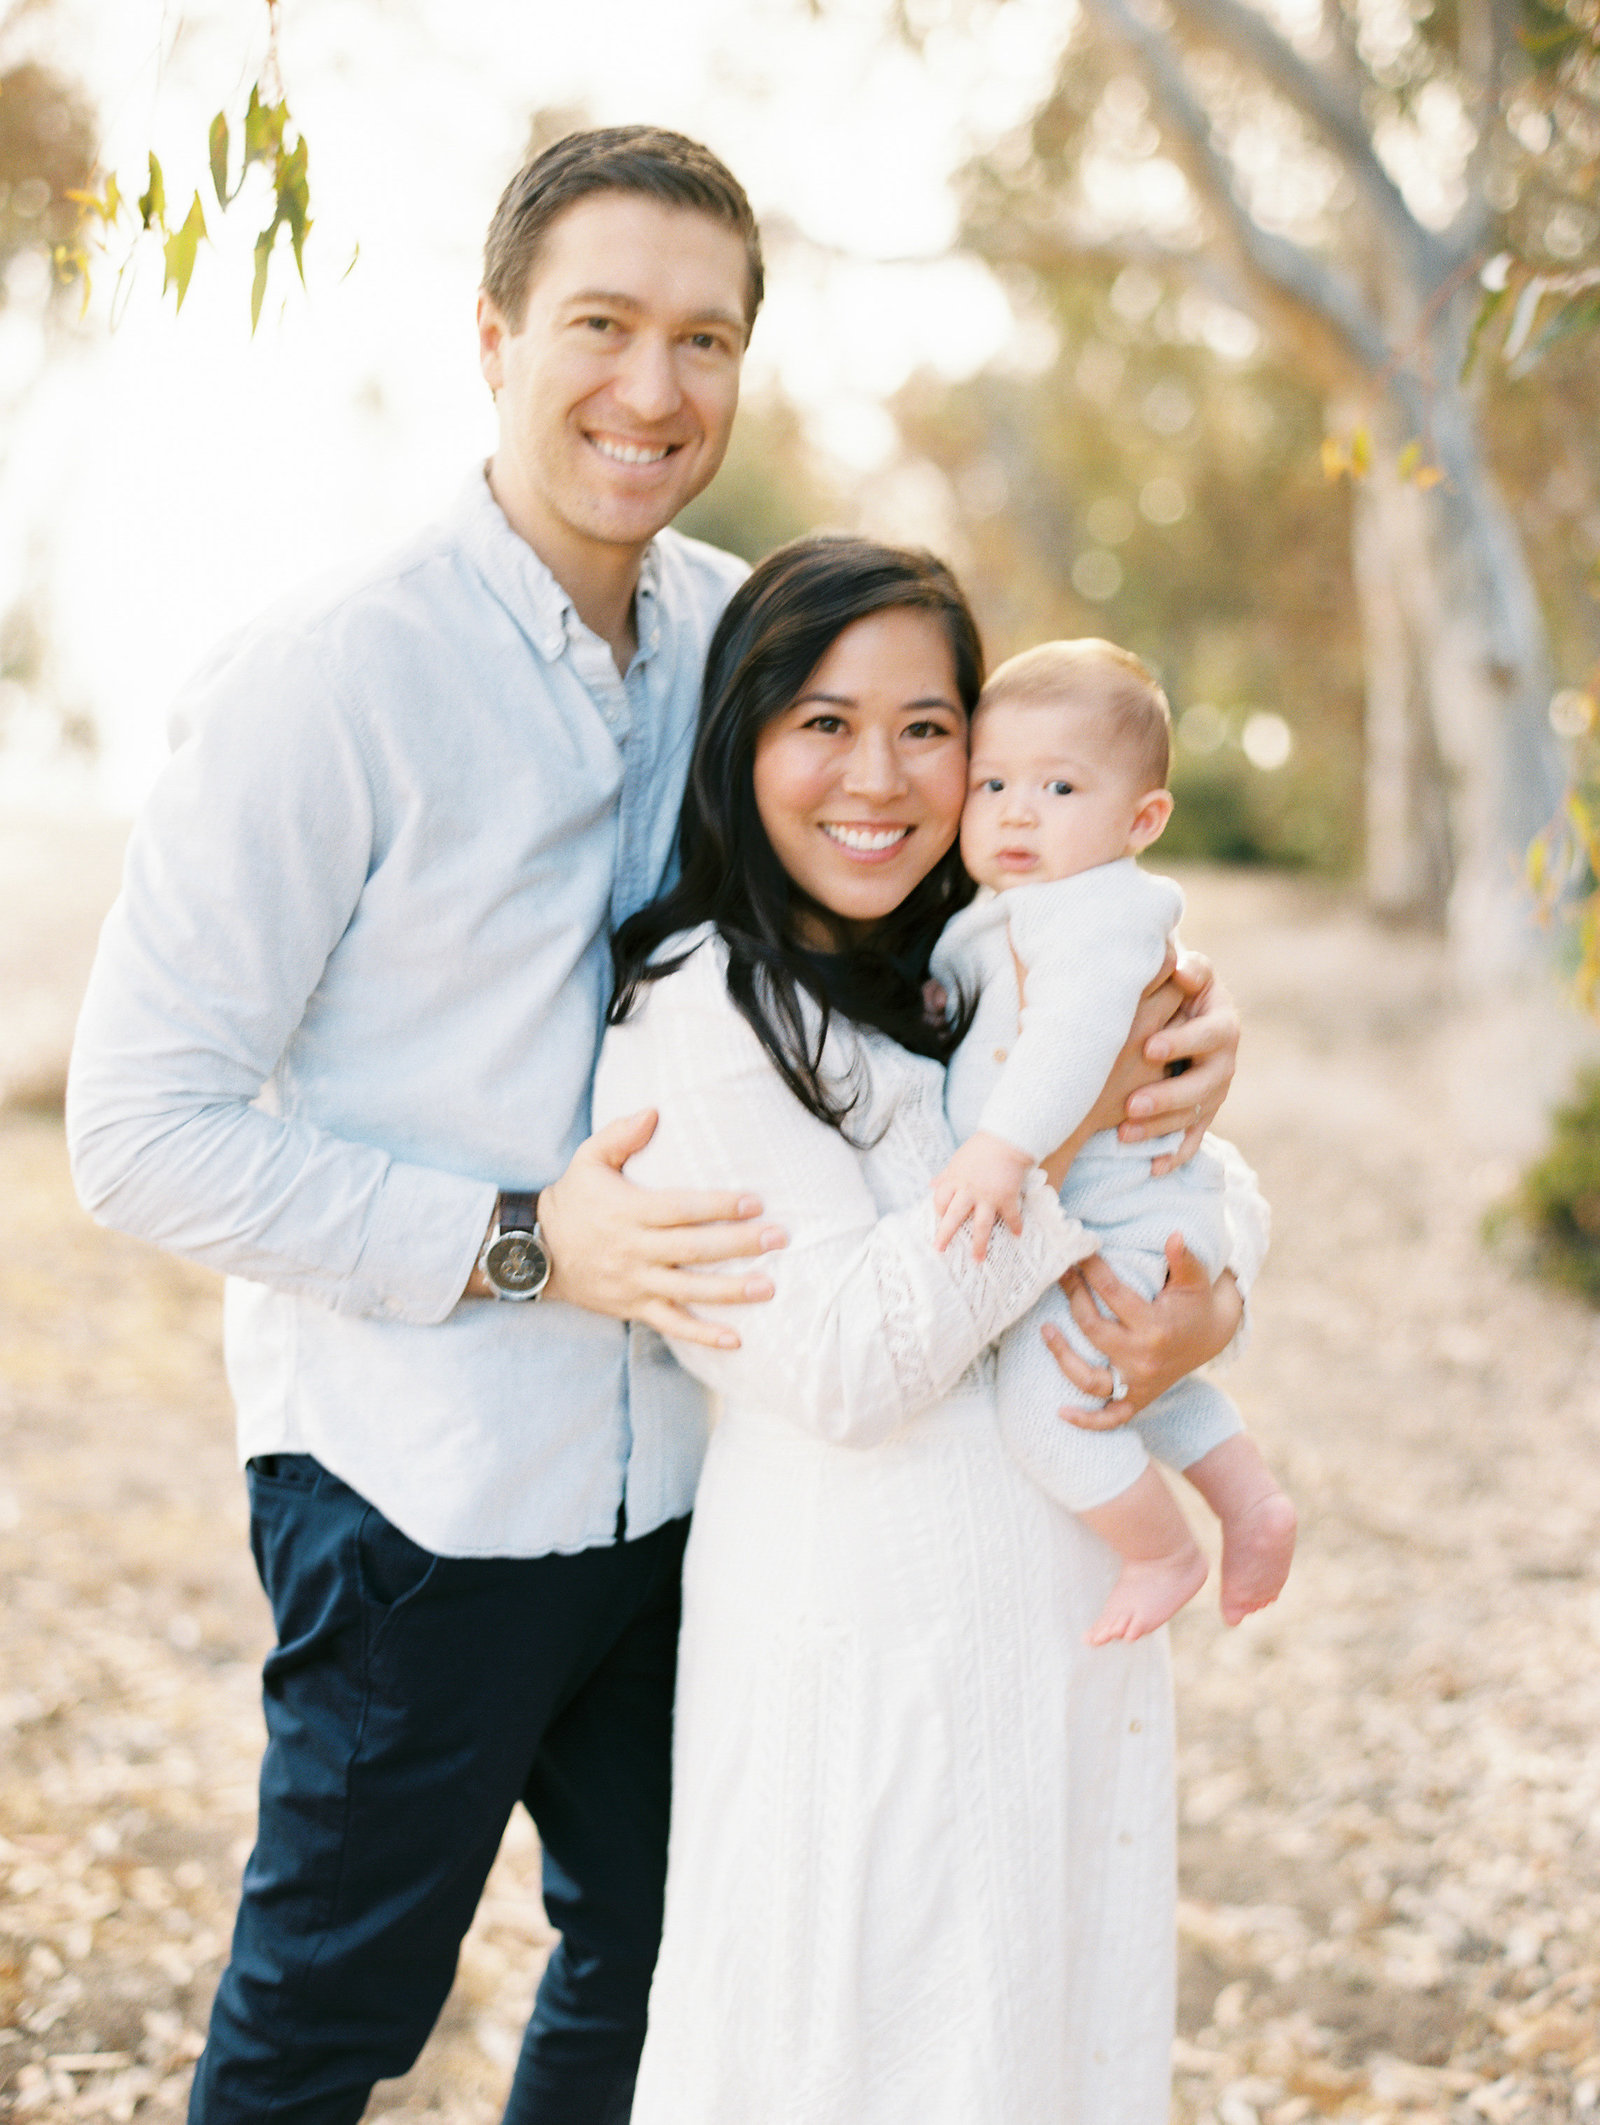 natalie bray studios, film portrait photographer, southern california photographer, maternity photographer -17